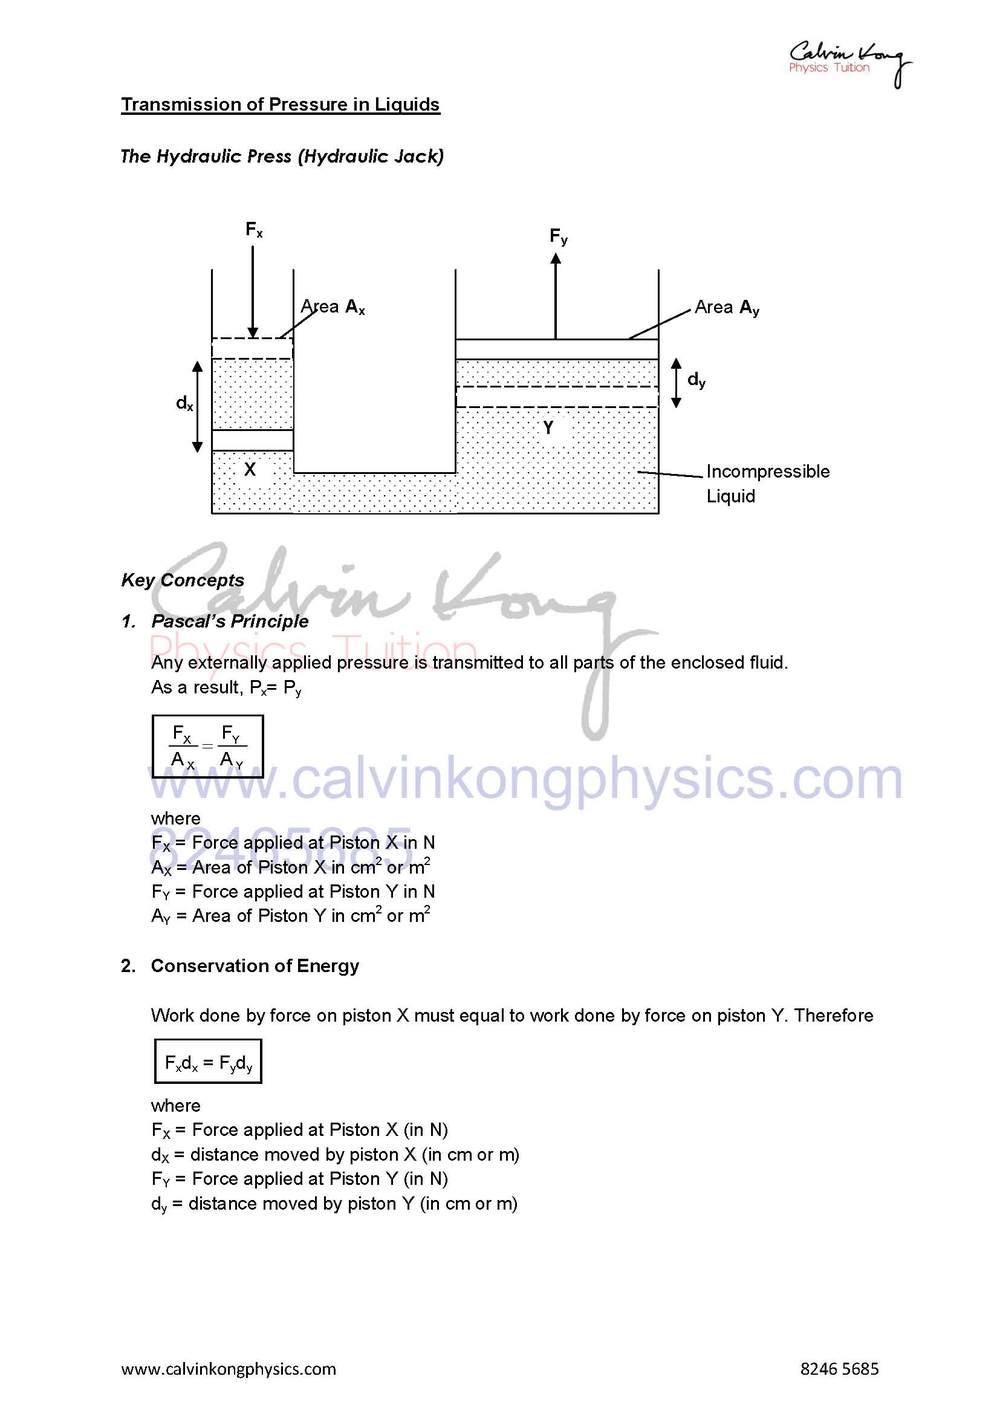 Describe and explain the transmission of pressure in hydraulic systems with particular reference to the hydraulic press.